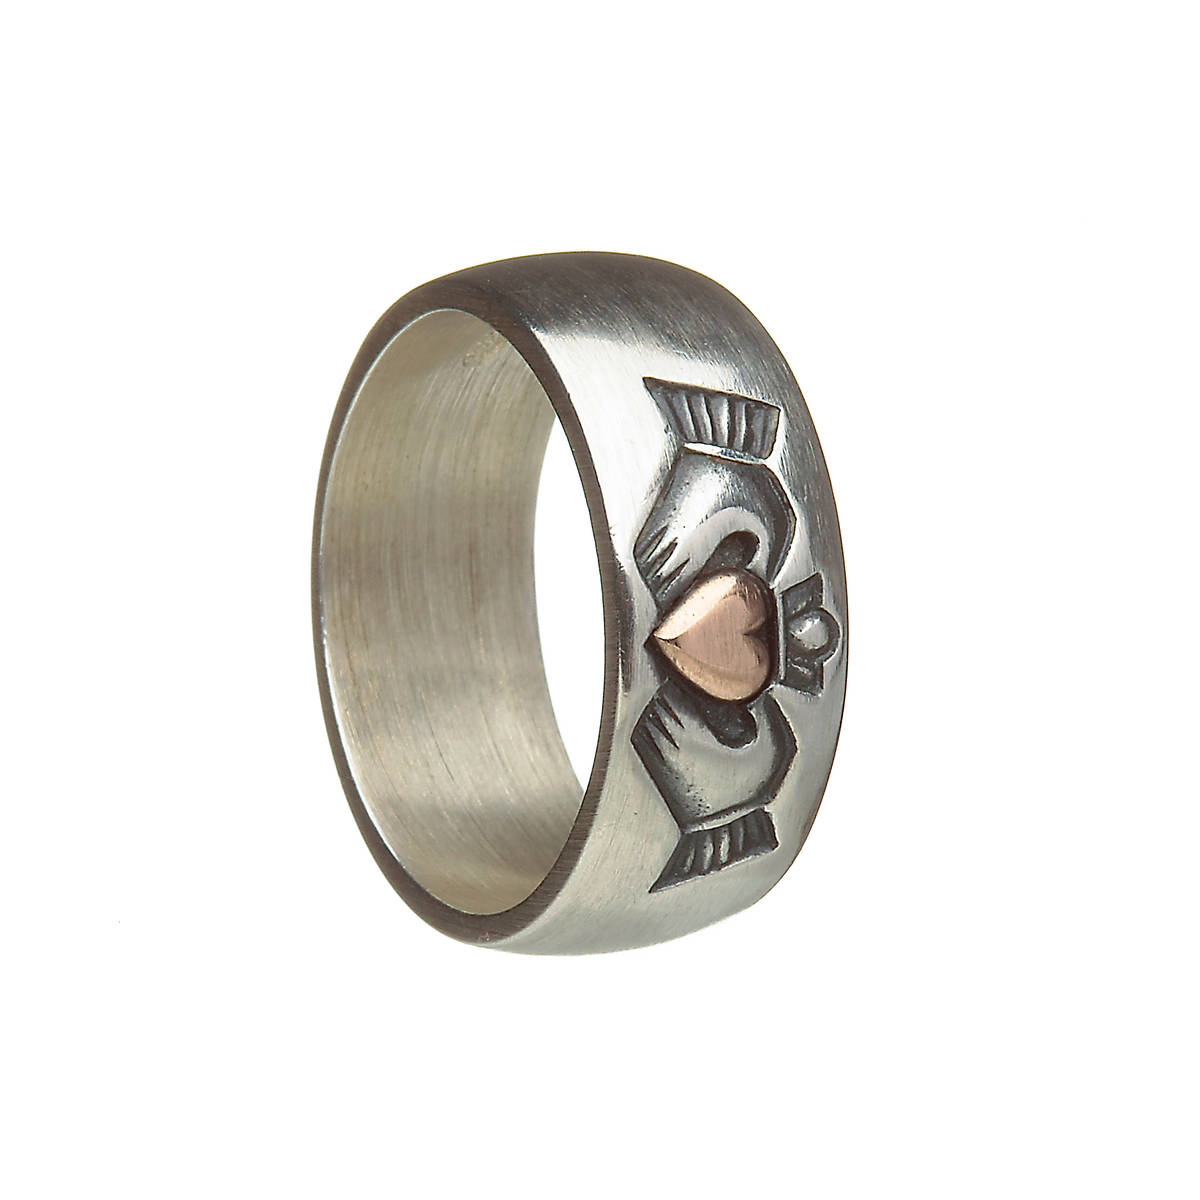 Antique brushed finish silver Claddagh ring with 10 carat rose gold heart.